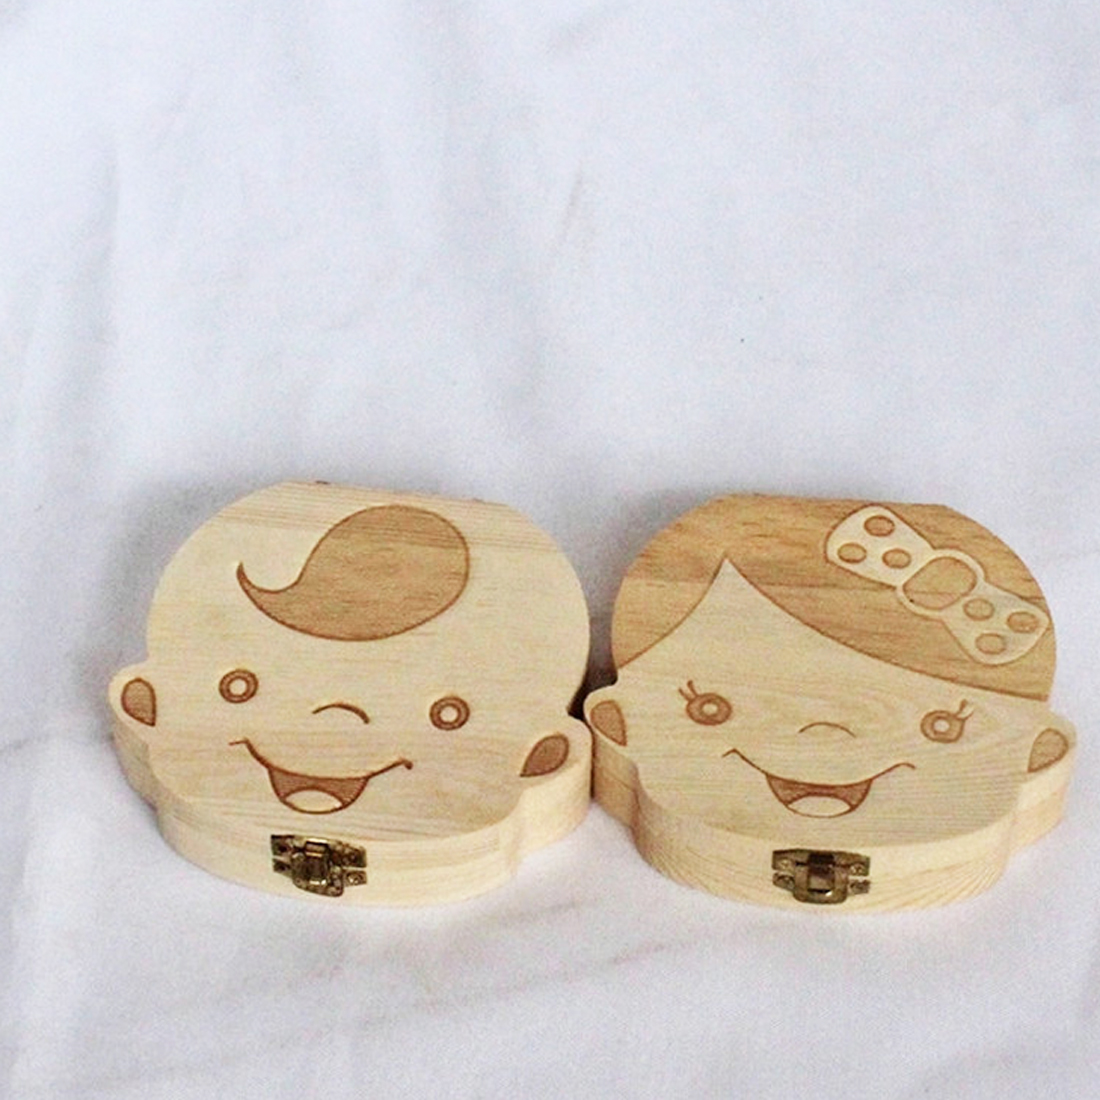 Wooden Baby Tooth New English  Box Organizer Save Teeth Umbilical Cord Milk Tooth Storage Box For Boy Girl